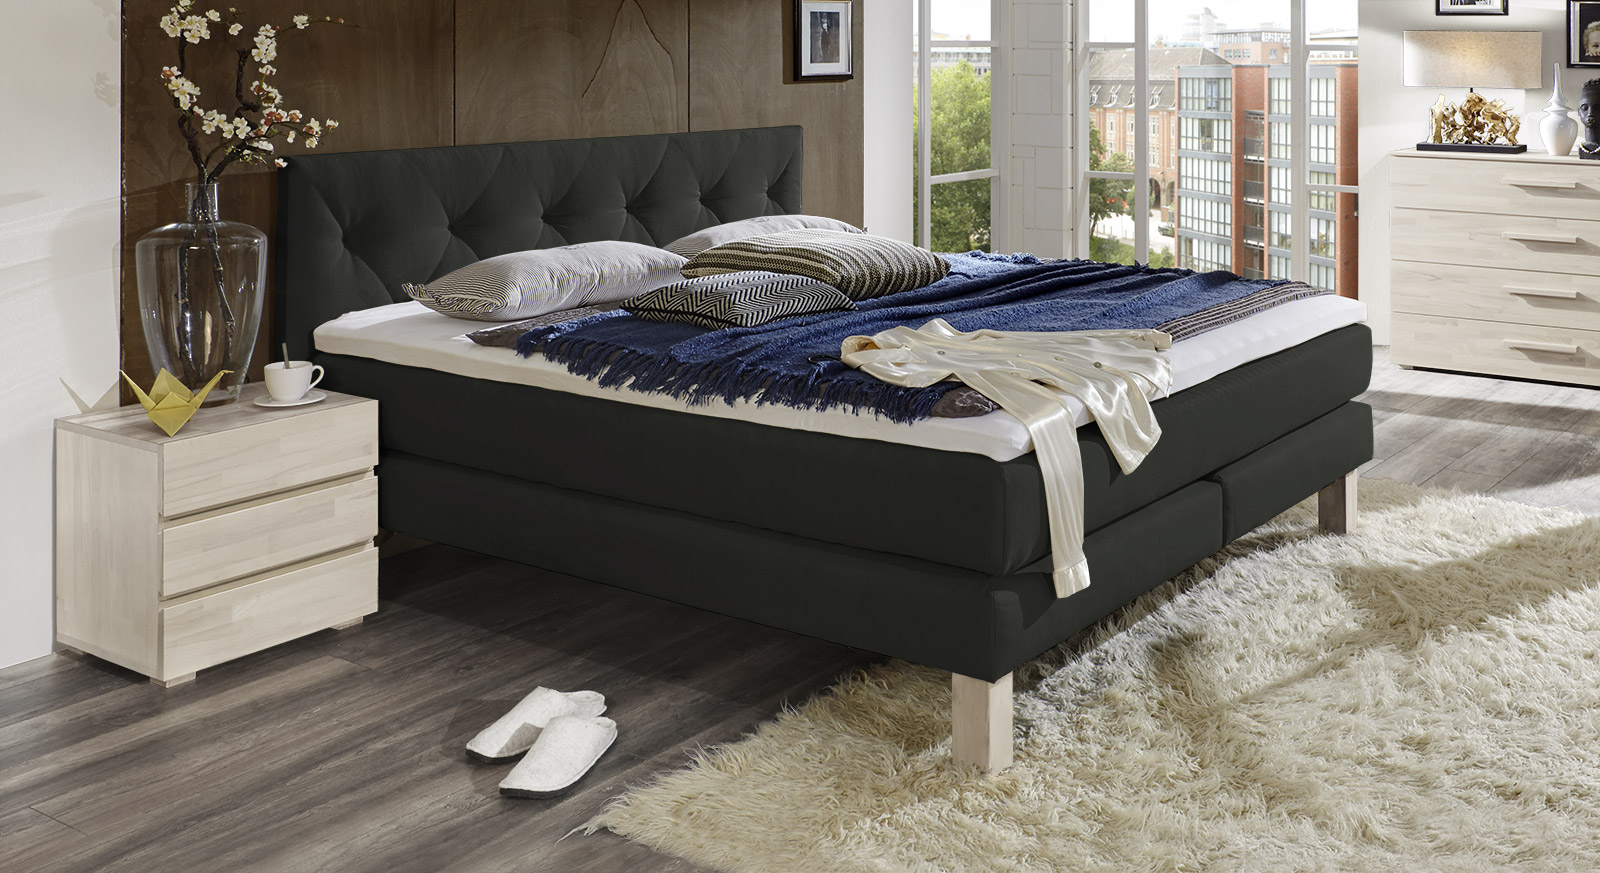 Boxspringbett In Romantisch-verspieltem Design